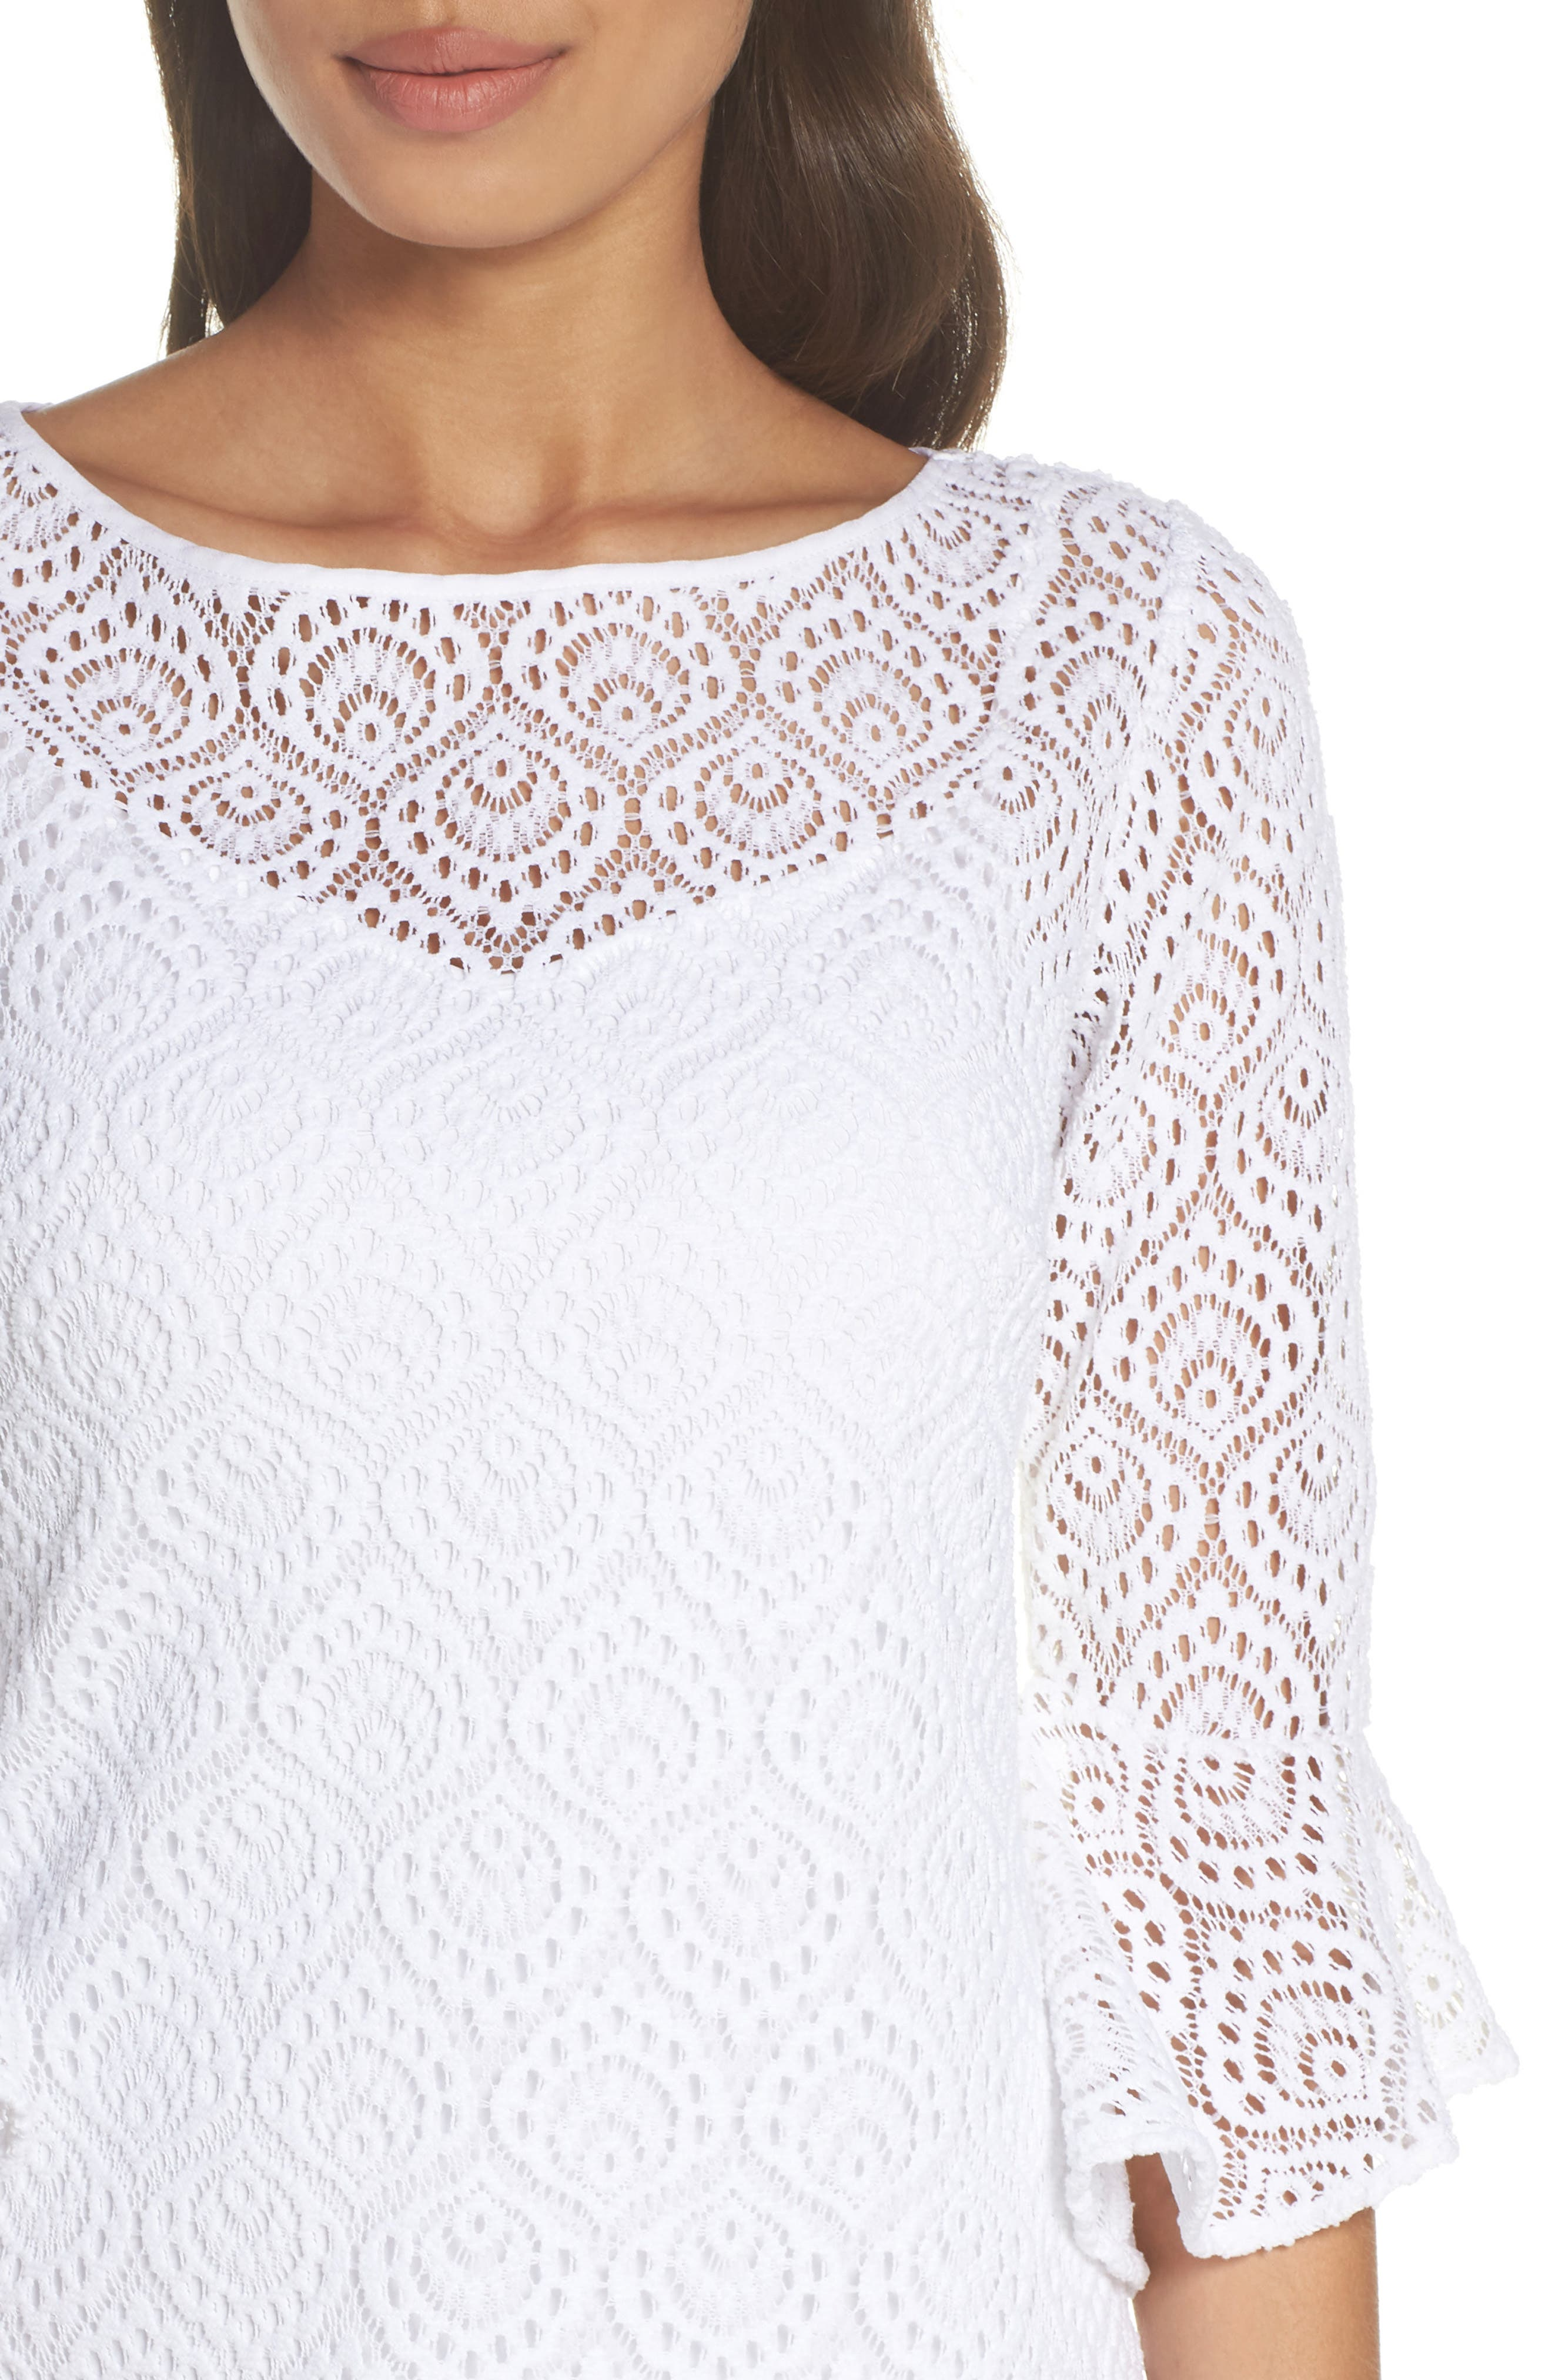 Fontaine Lace Minidress,                             Alternate thumbnail 4, color,                             Resort White Gypsea Lace